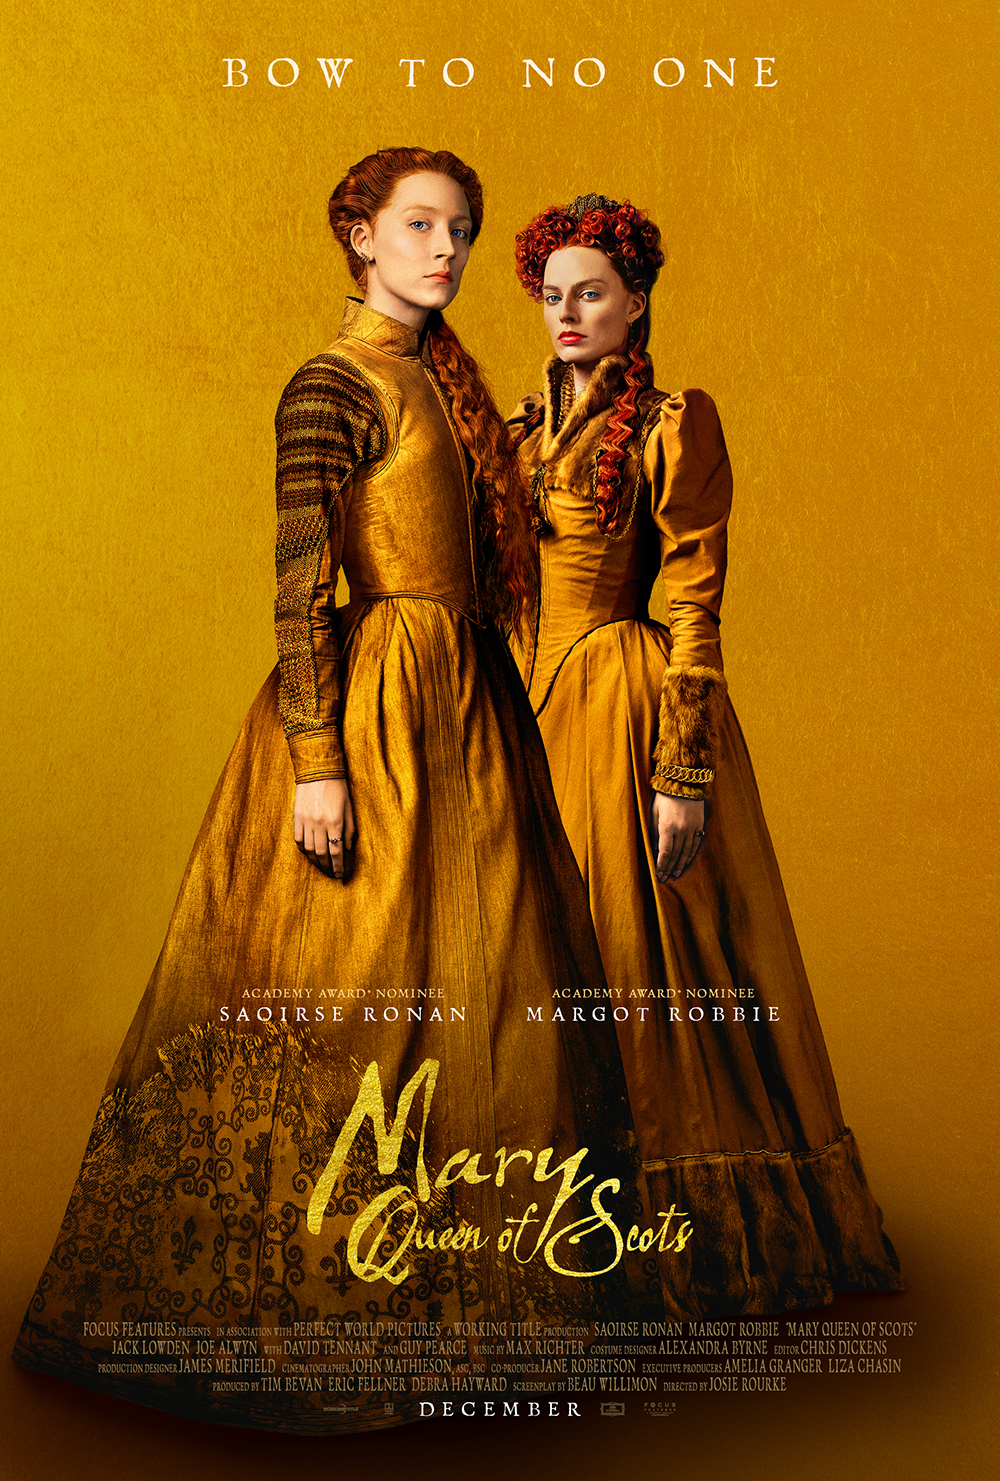 Mary Queen Of Scots at an AMC Theatre near you